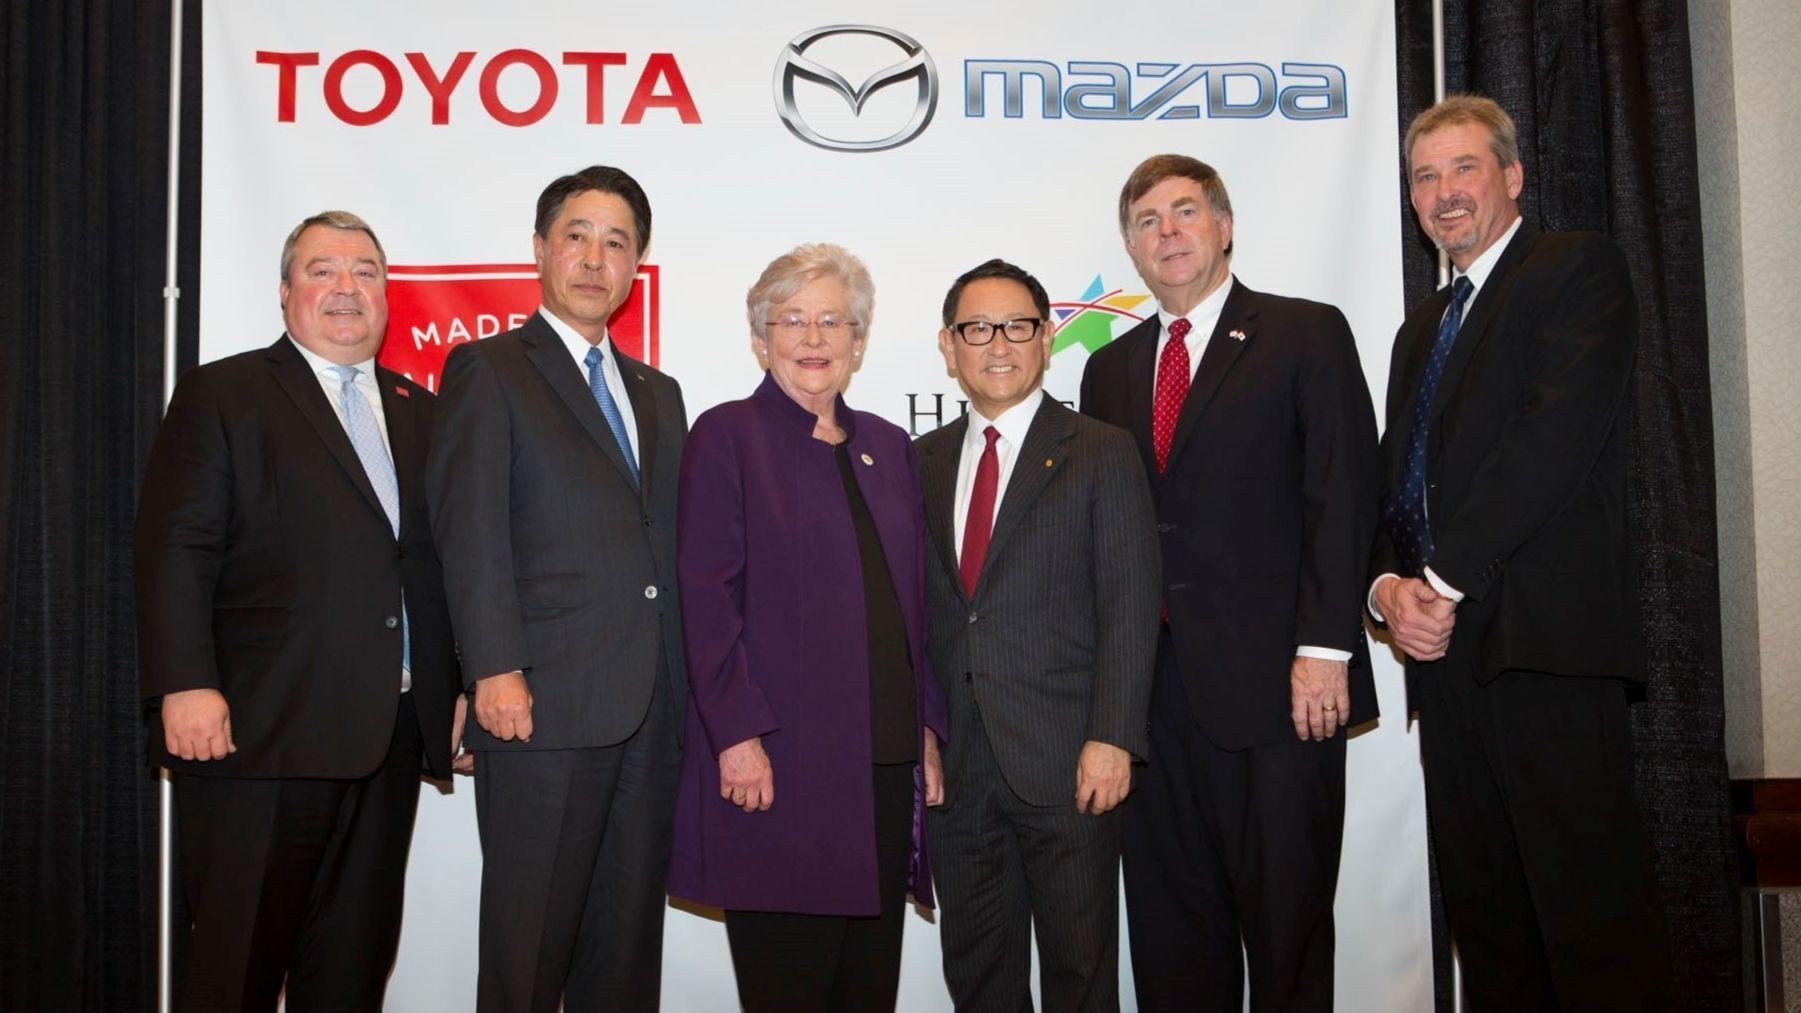 Mazda Toyota In Joint Venture For New Alabama Plant The